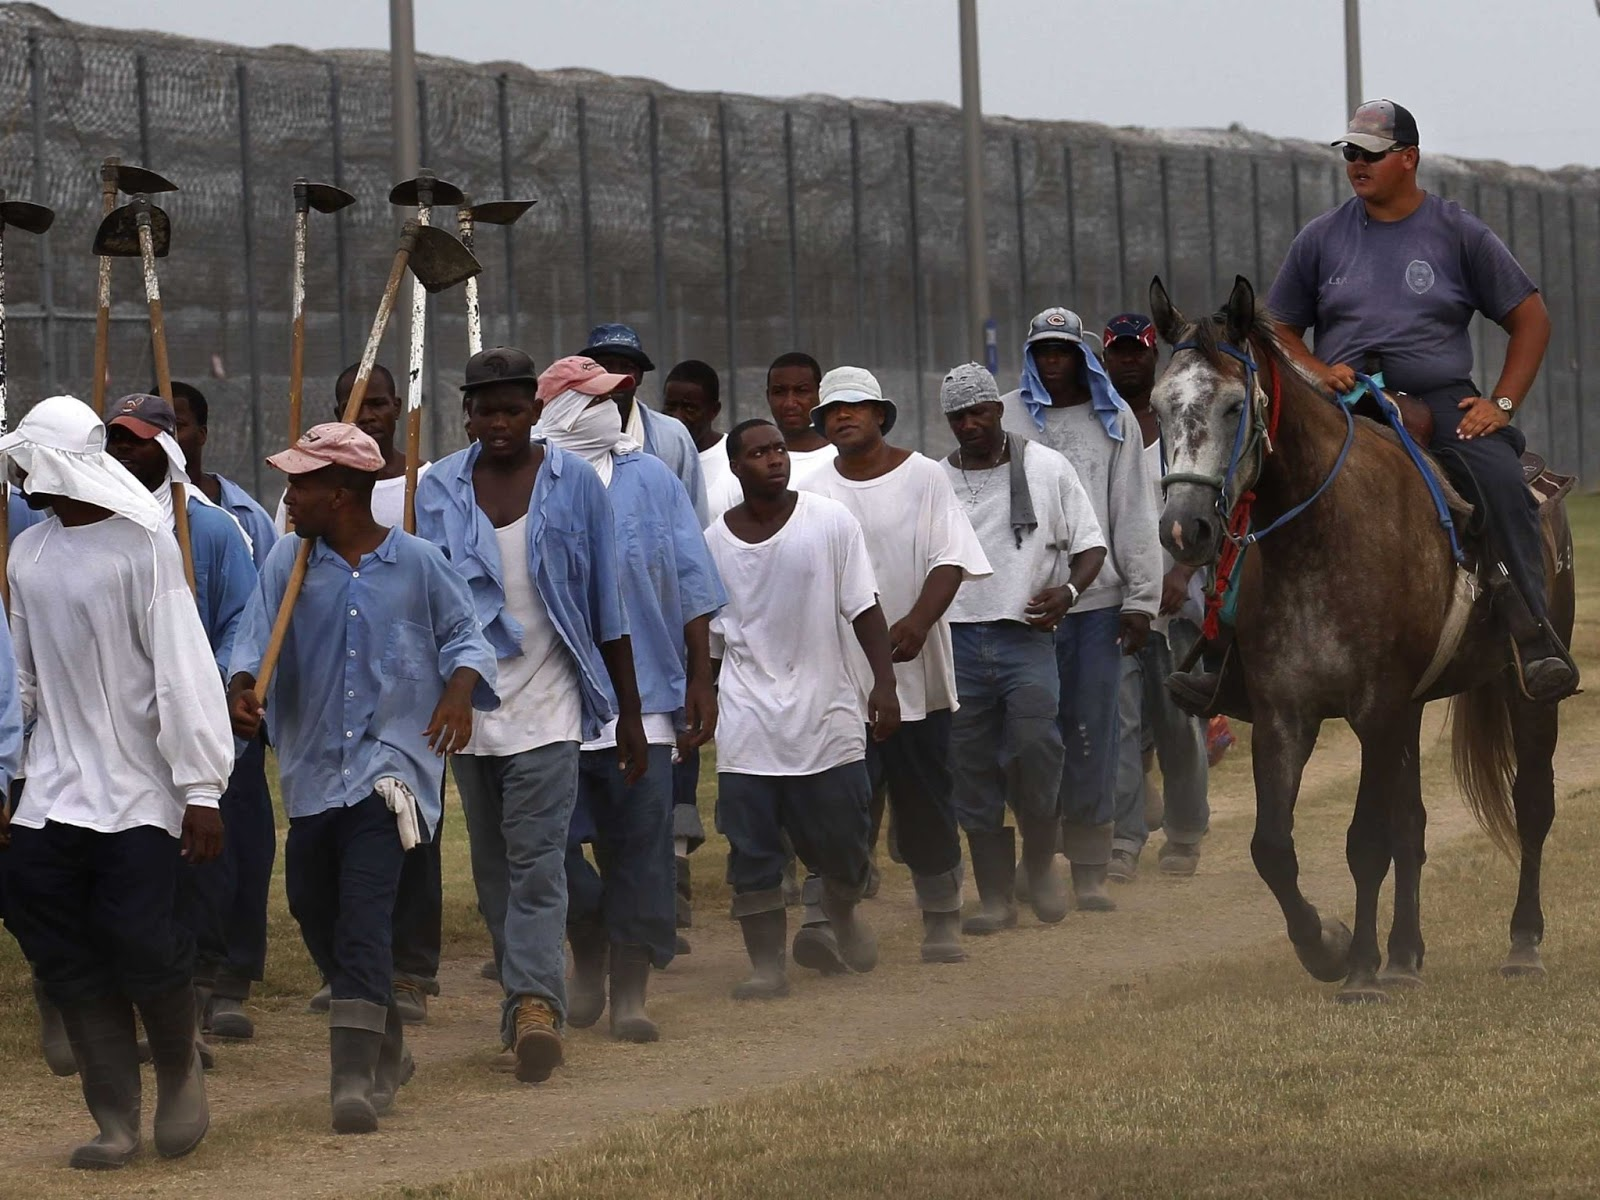 Angola Prison, Louisiana. Photo: Refractory